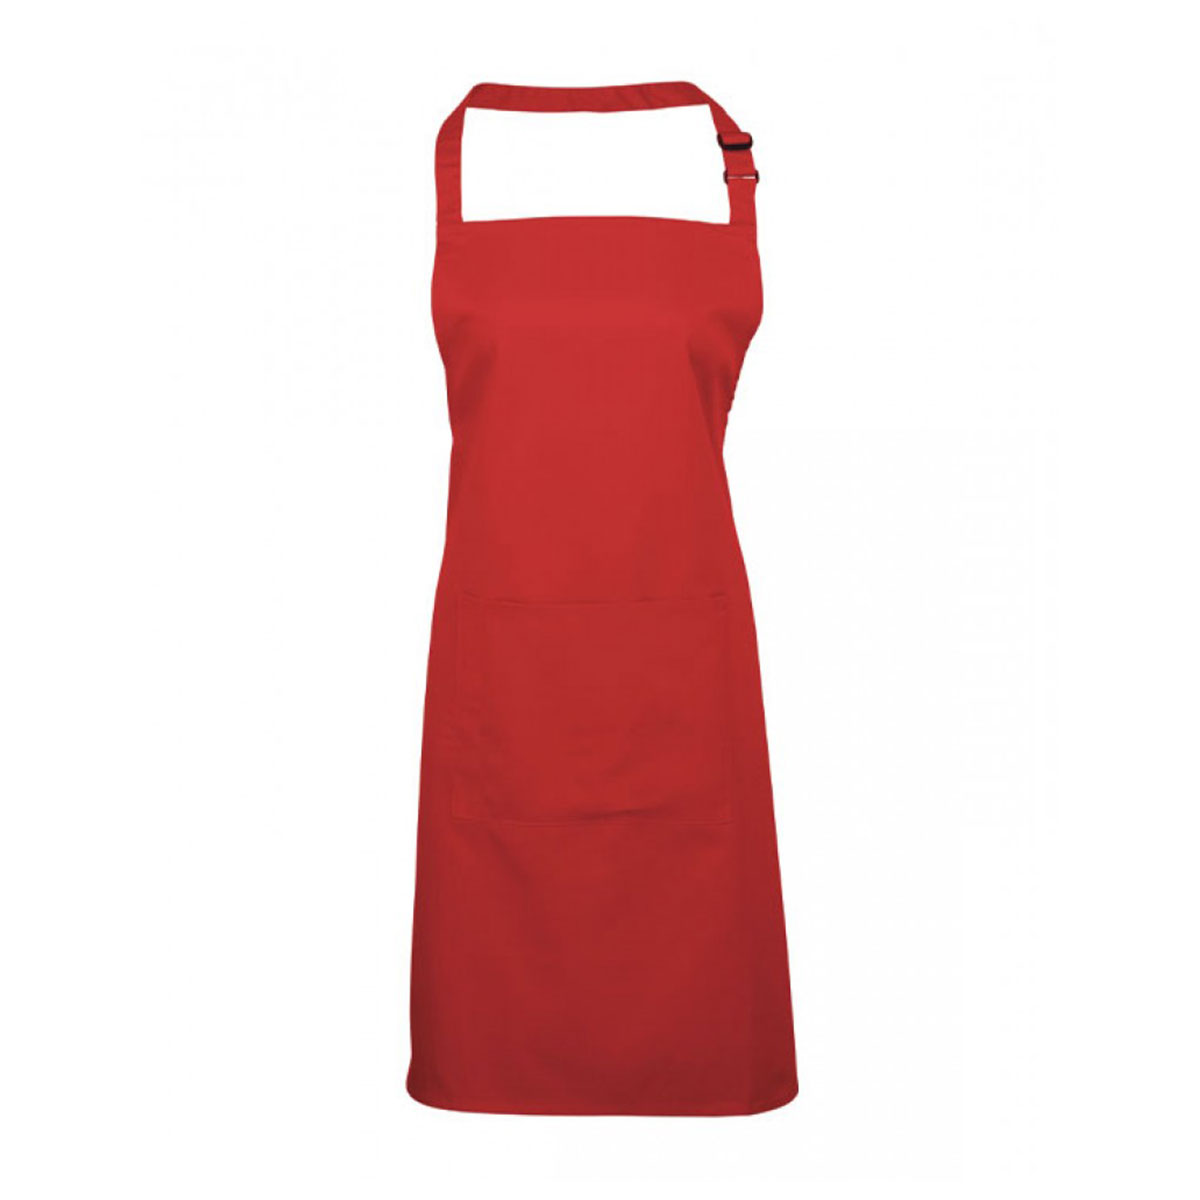 Colours Bib Apron with Pocket - pr154_red